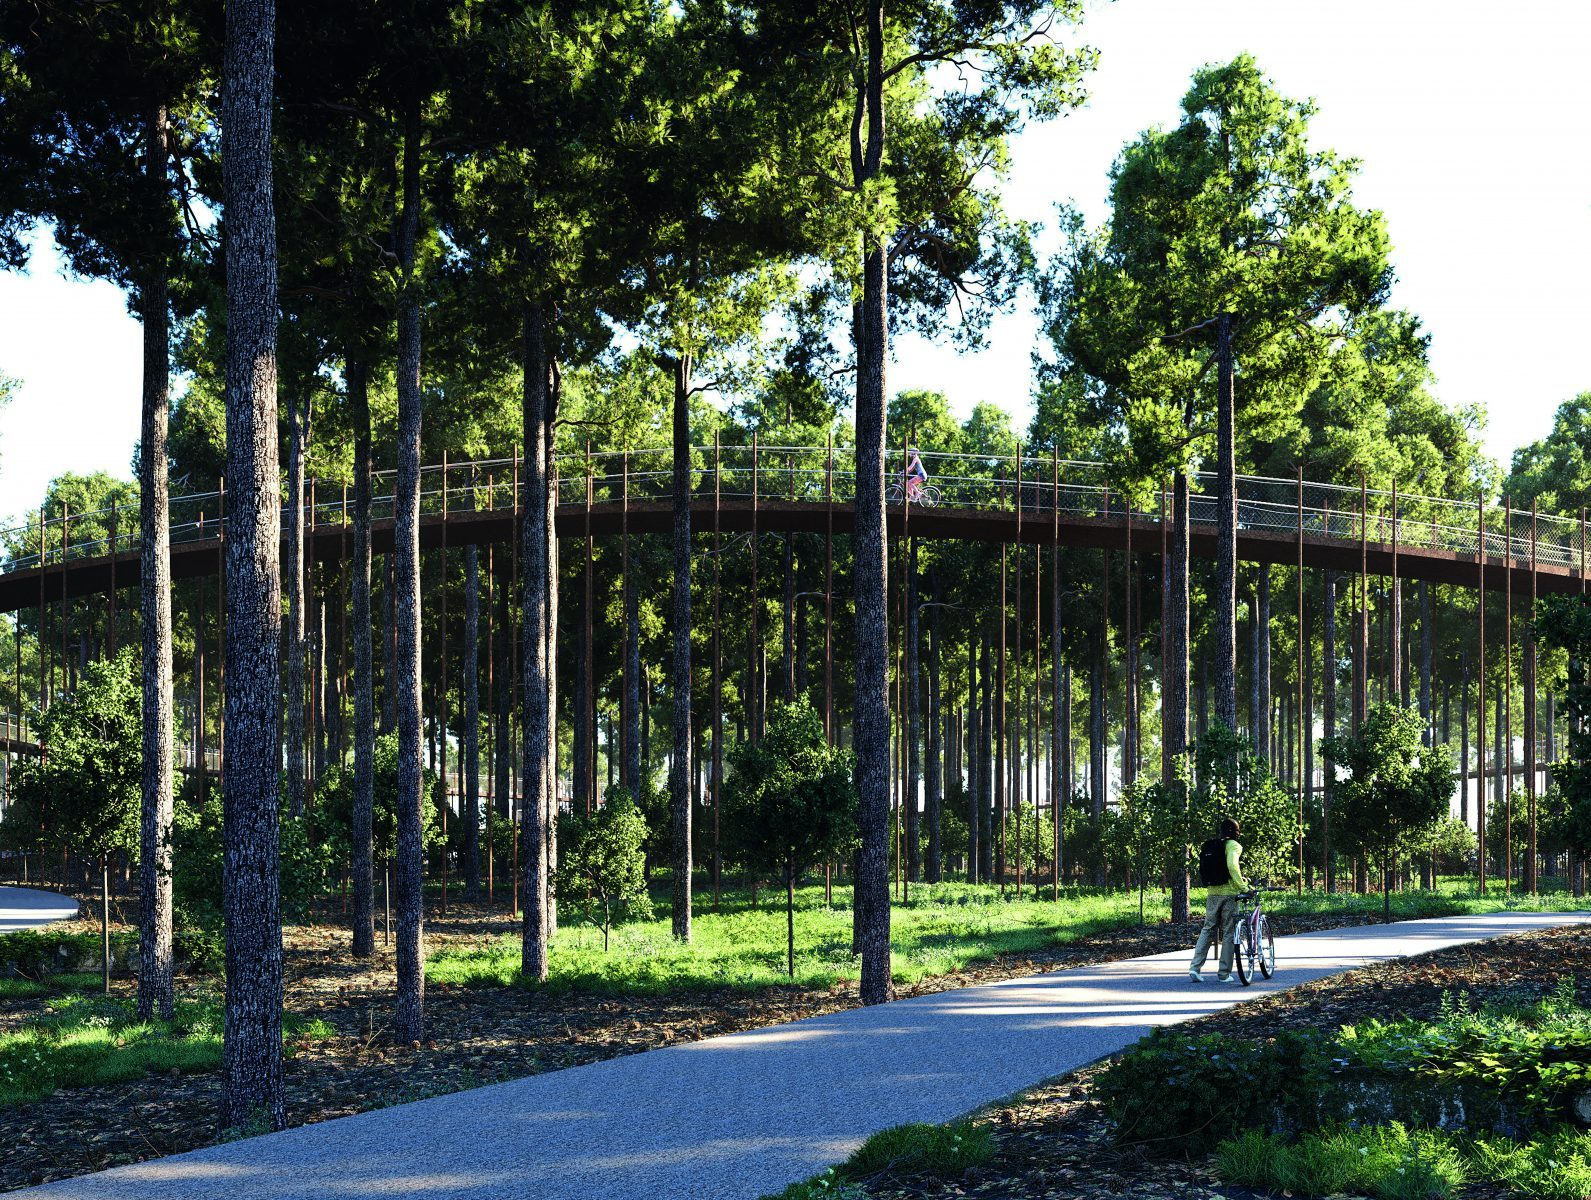 Cycling through the trees | De Gregorio & Partners architecten + BuroLandschap (Limburg, Belgium)